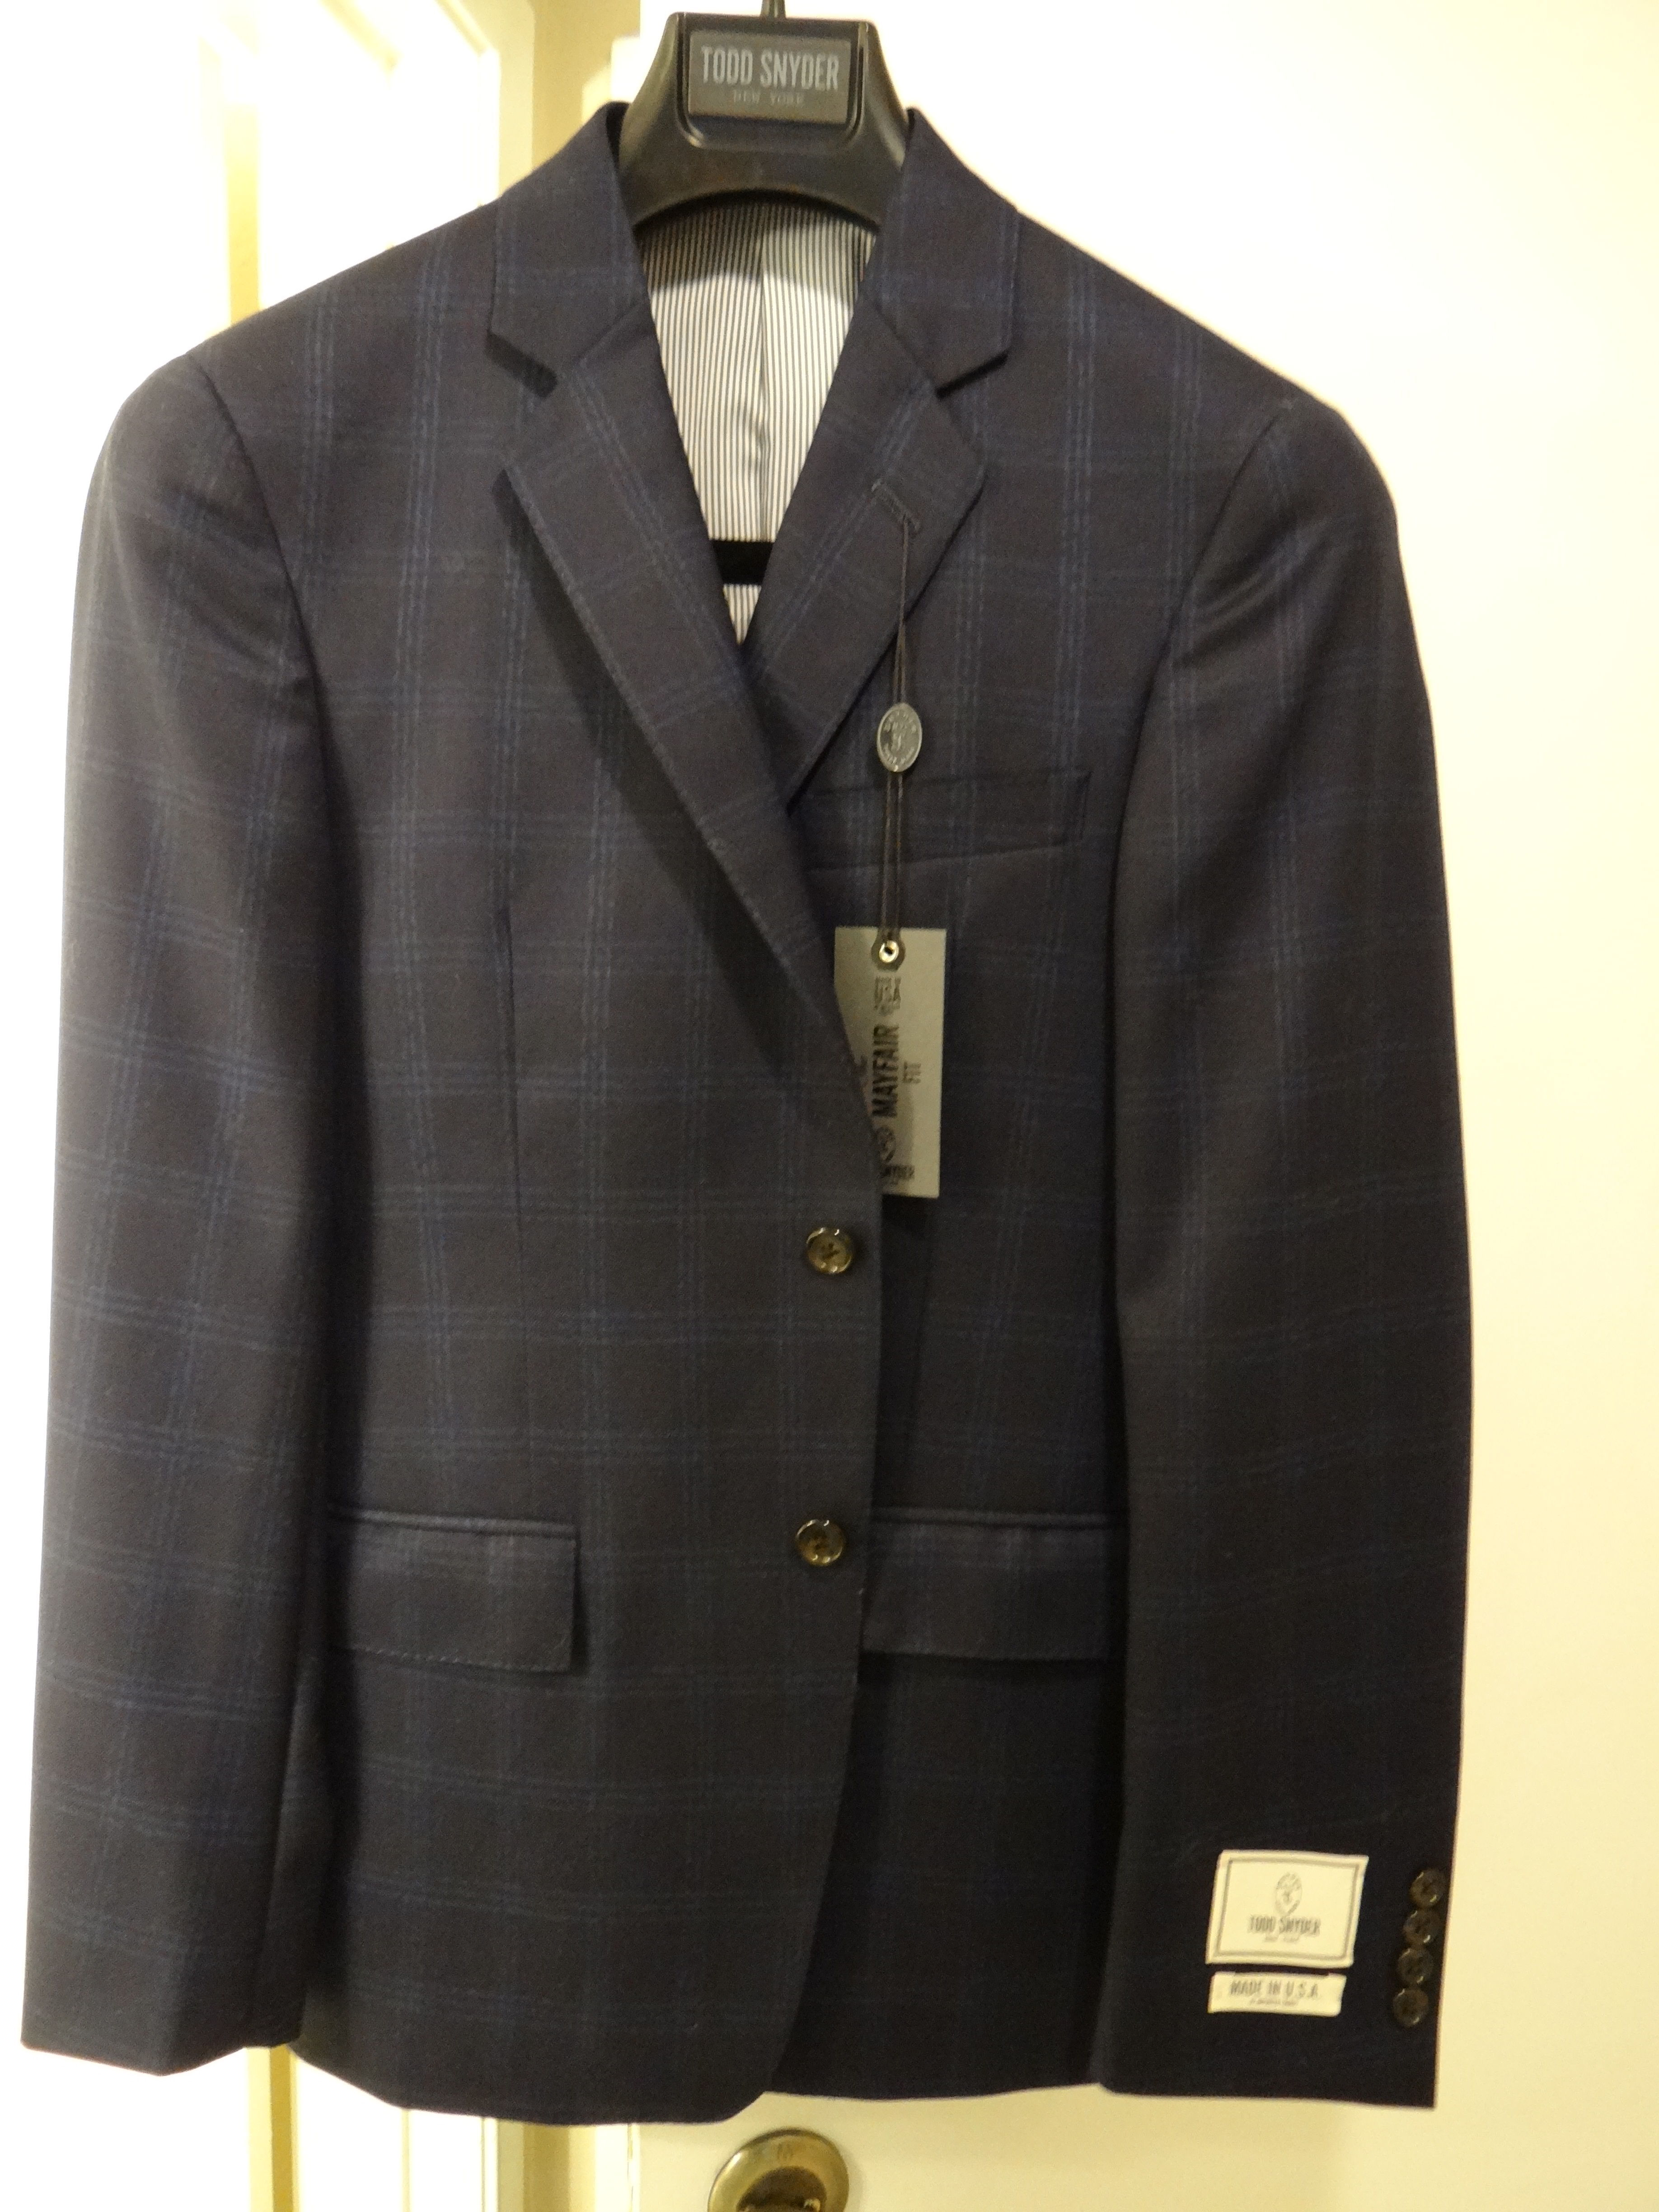 4/20 FURTHER PRICE DROP! Inexpensive NWT Navy Blue Sport Coats ...